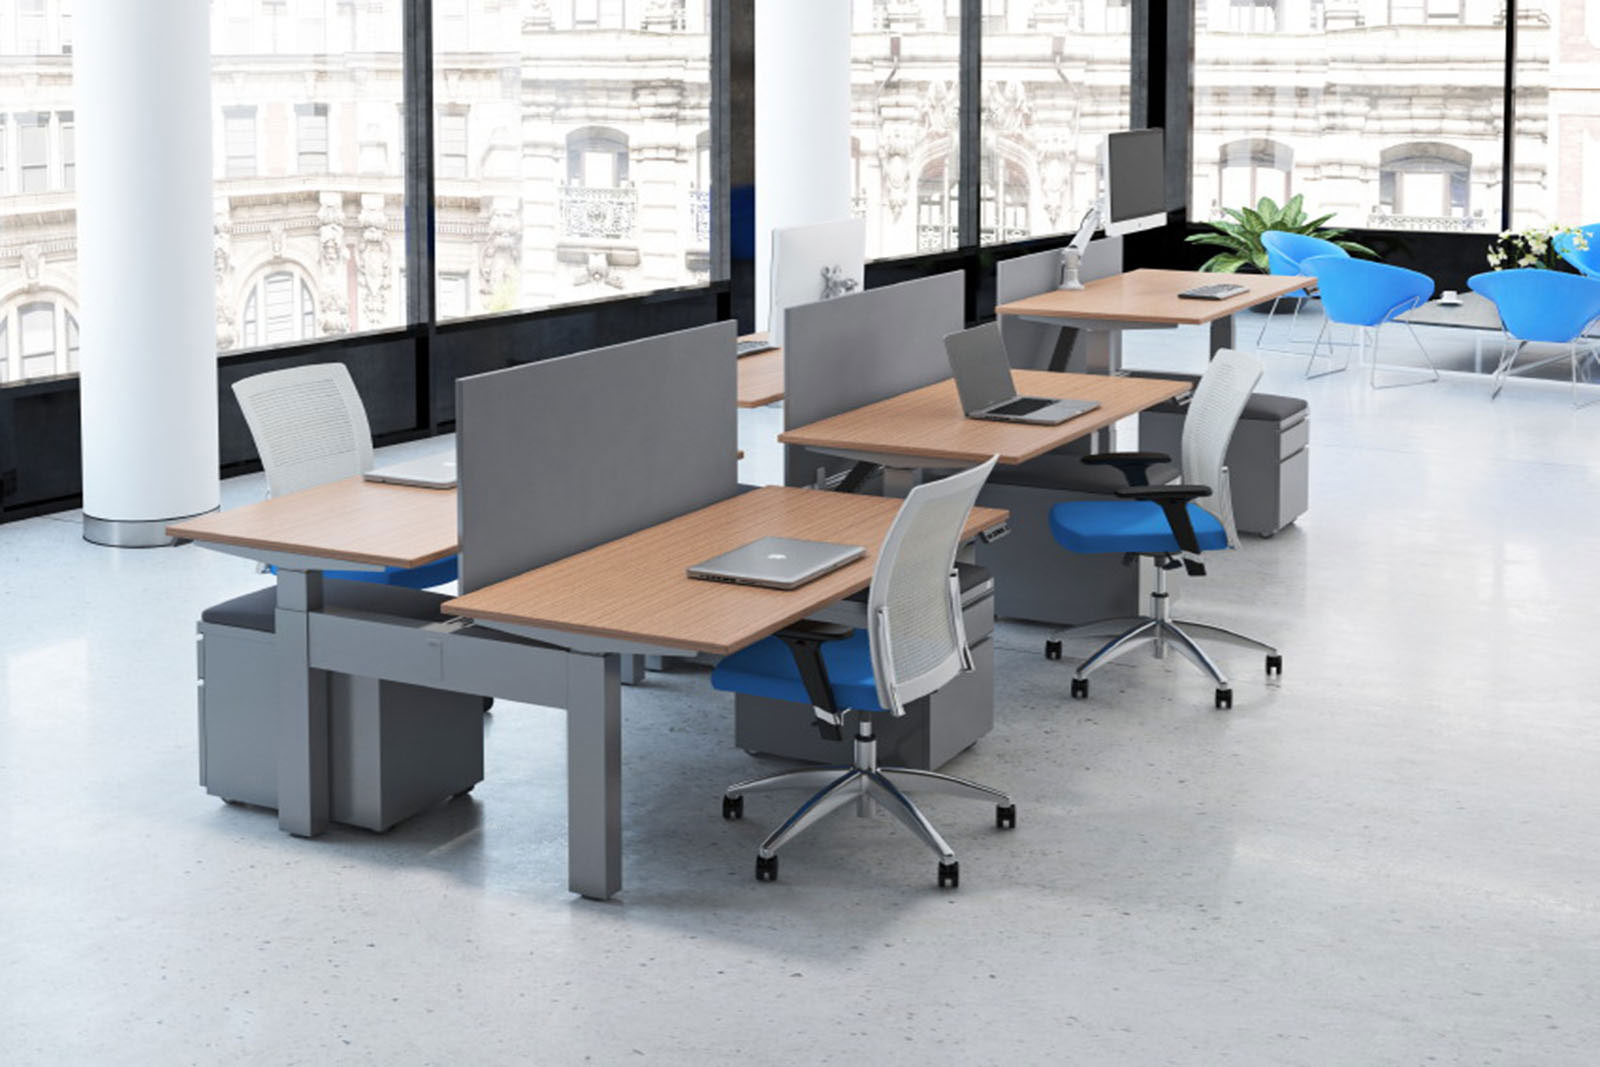 amq-benching-sit-to-stand-products-case-goods